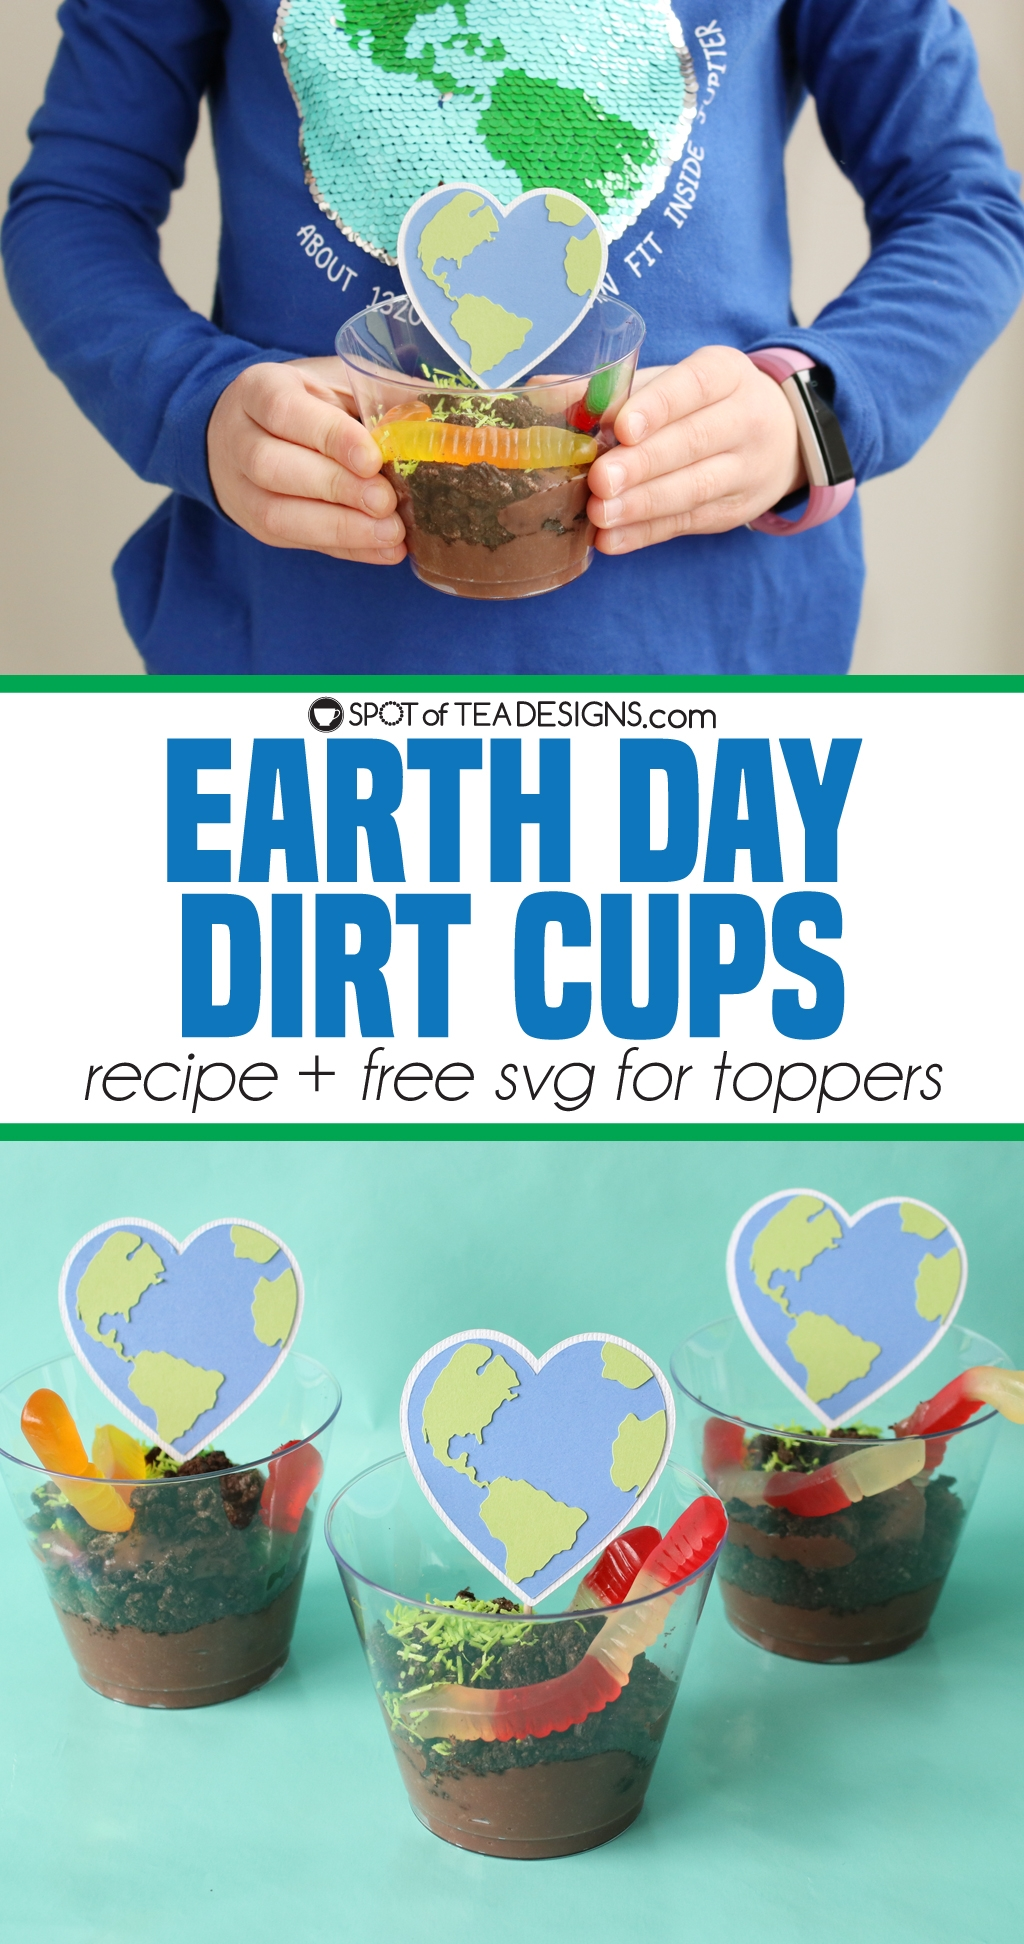 Earth Day Dirt Cups with Heart Earth toppers | spotofteadesigns.com